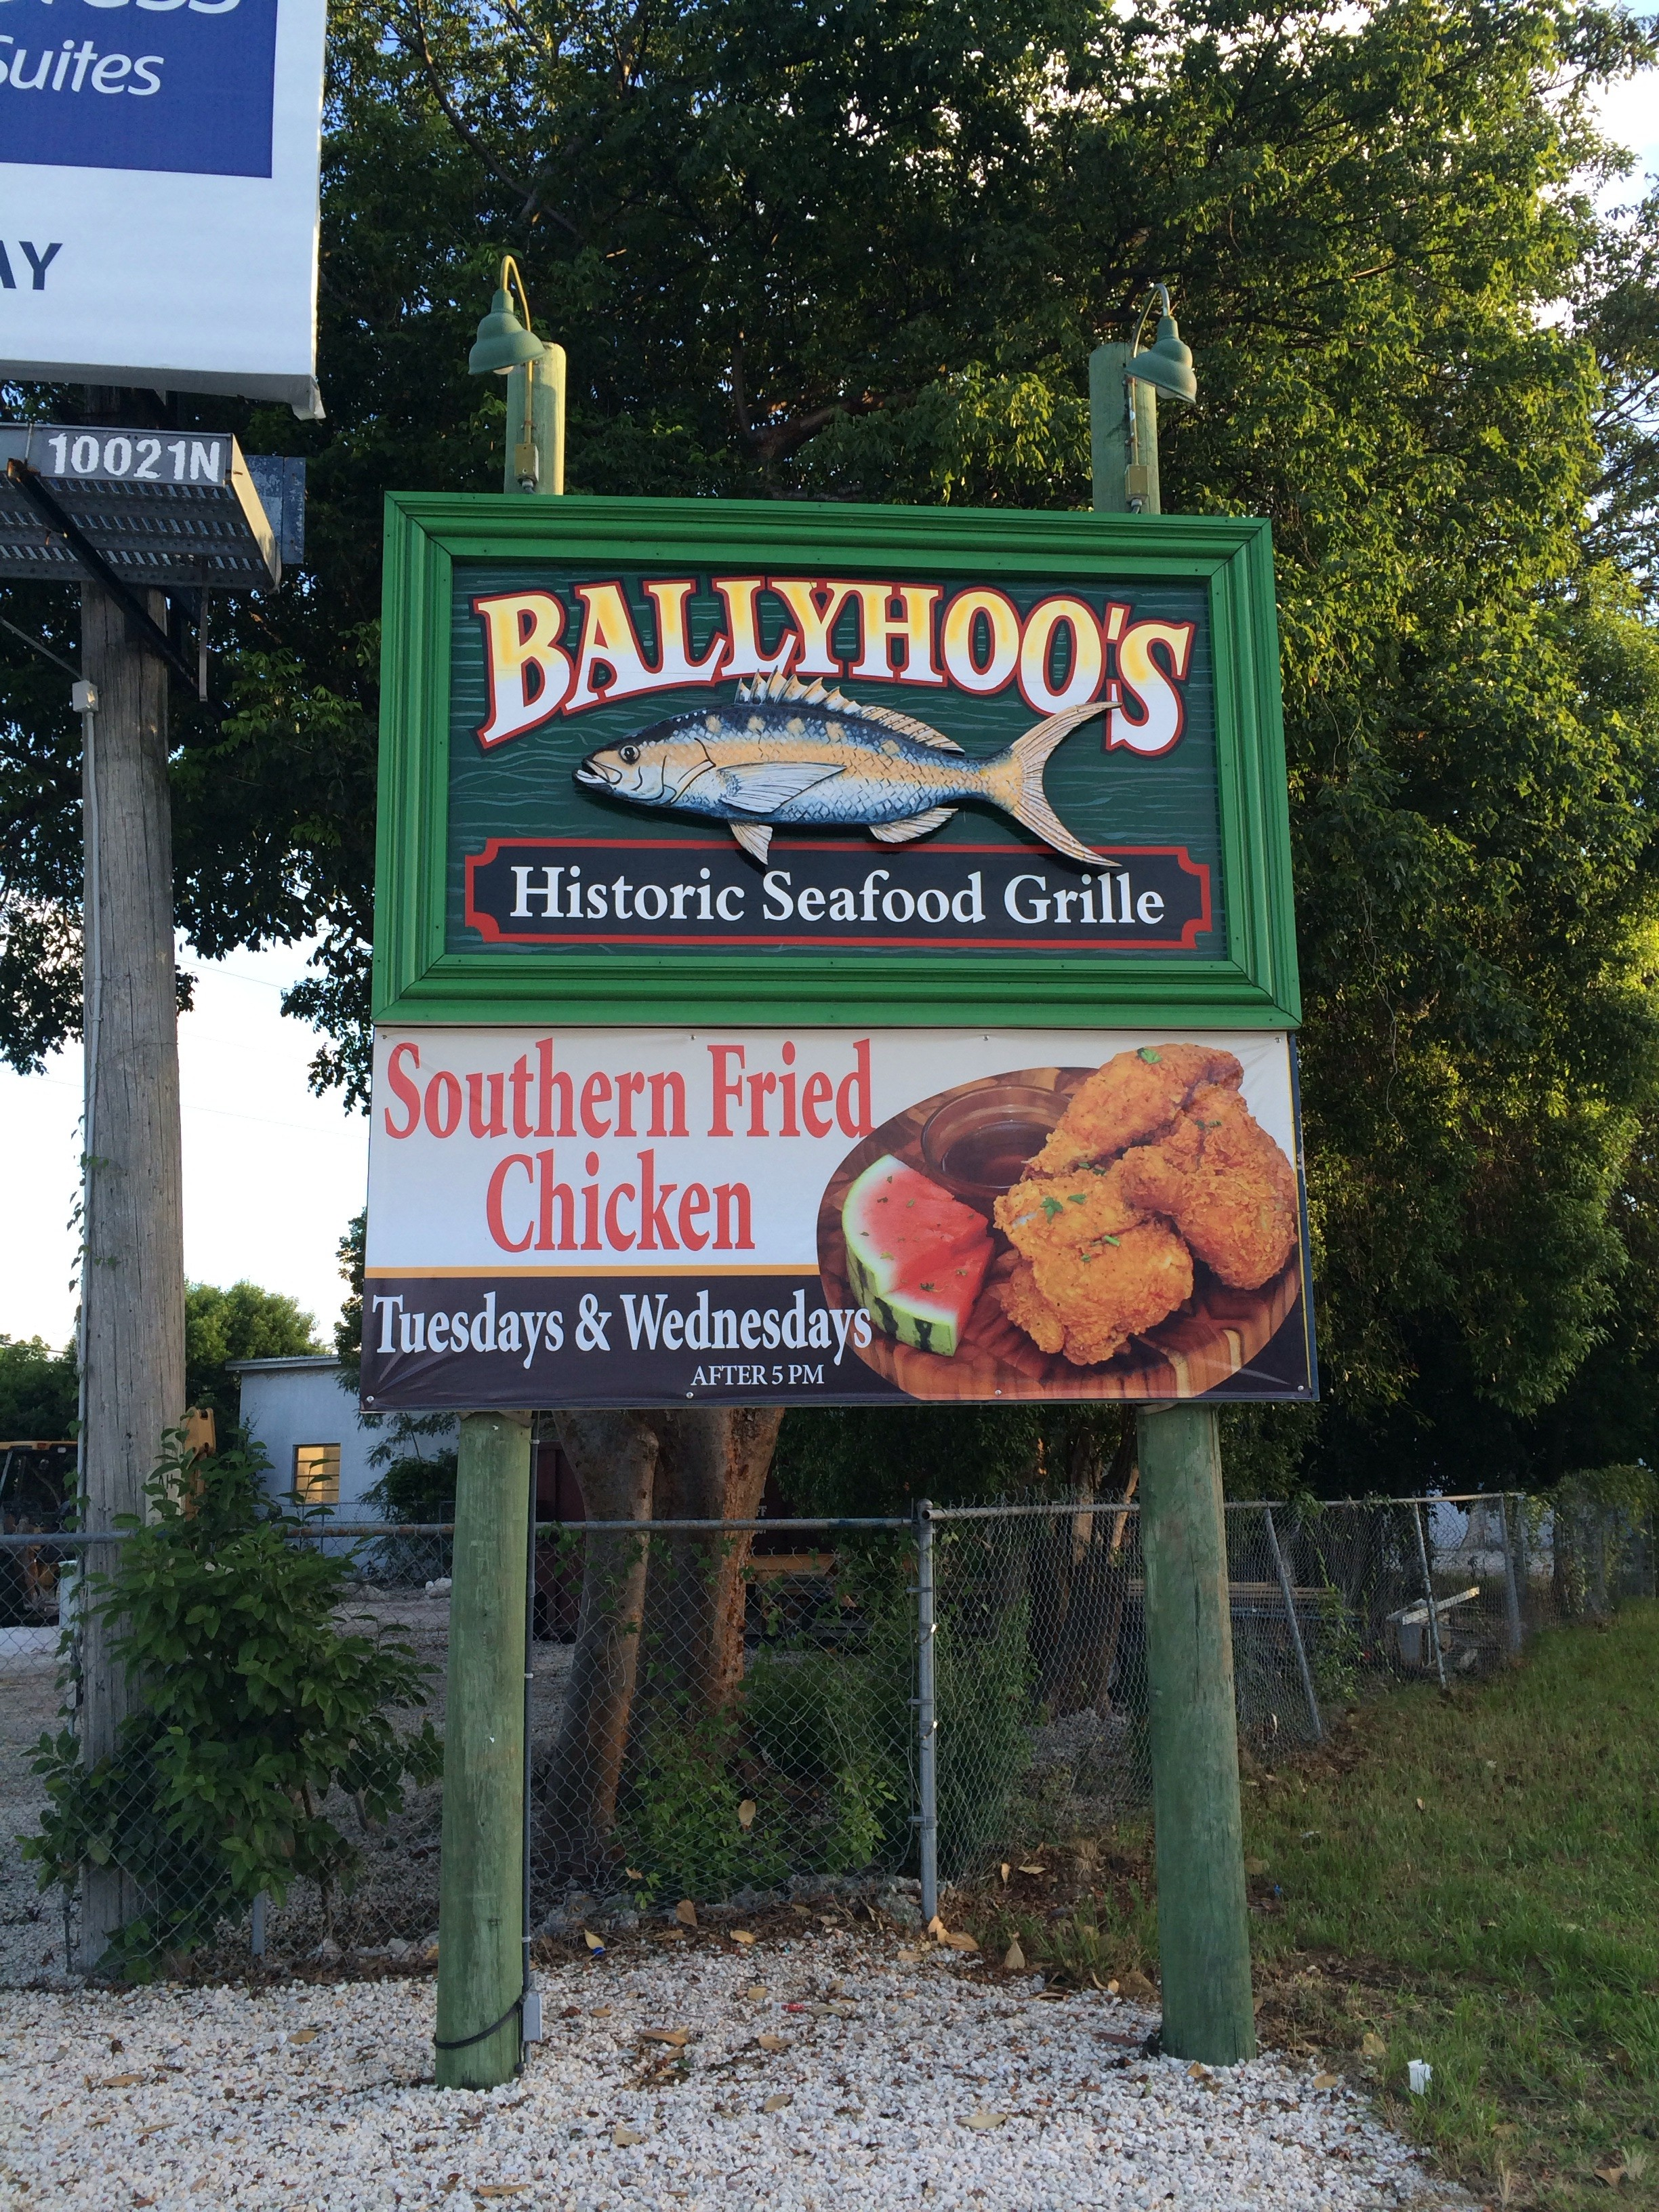 Ballyhoo S Historic Seafood Grille Key Largo Florida